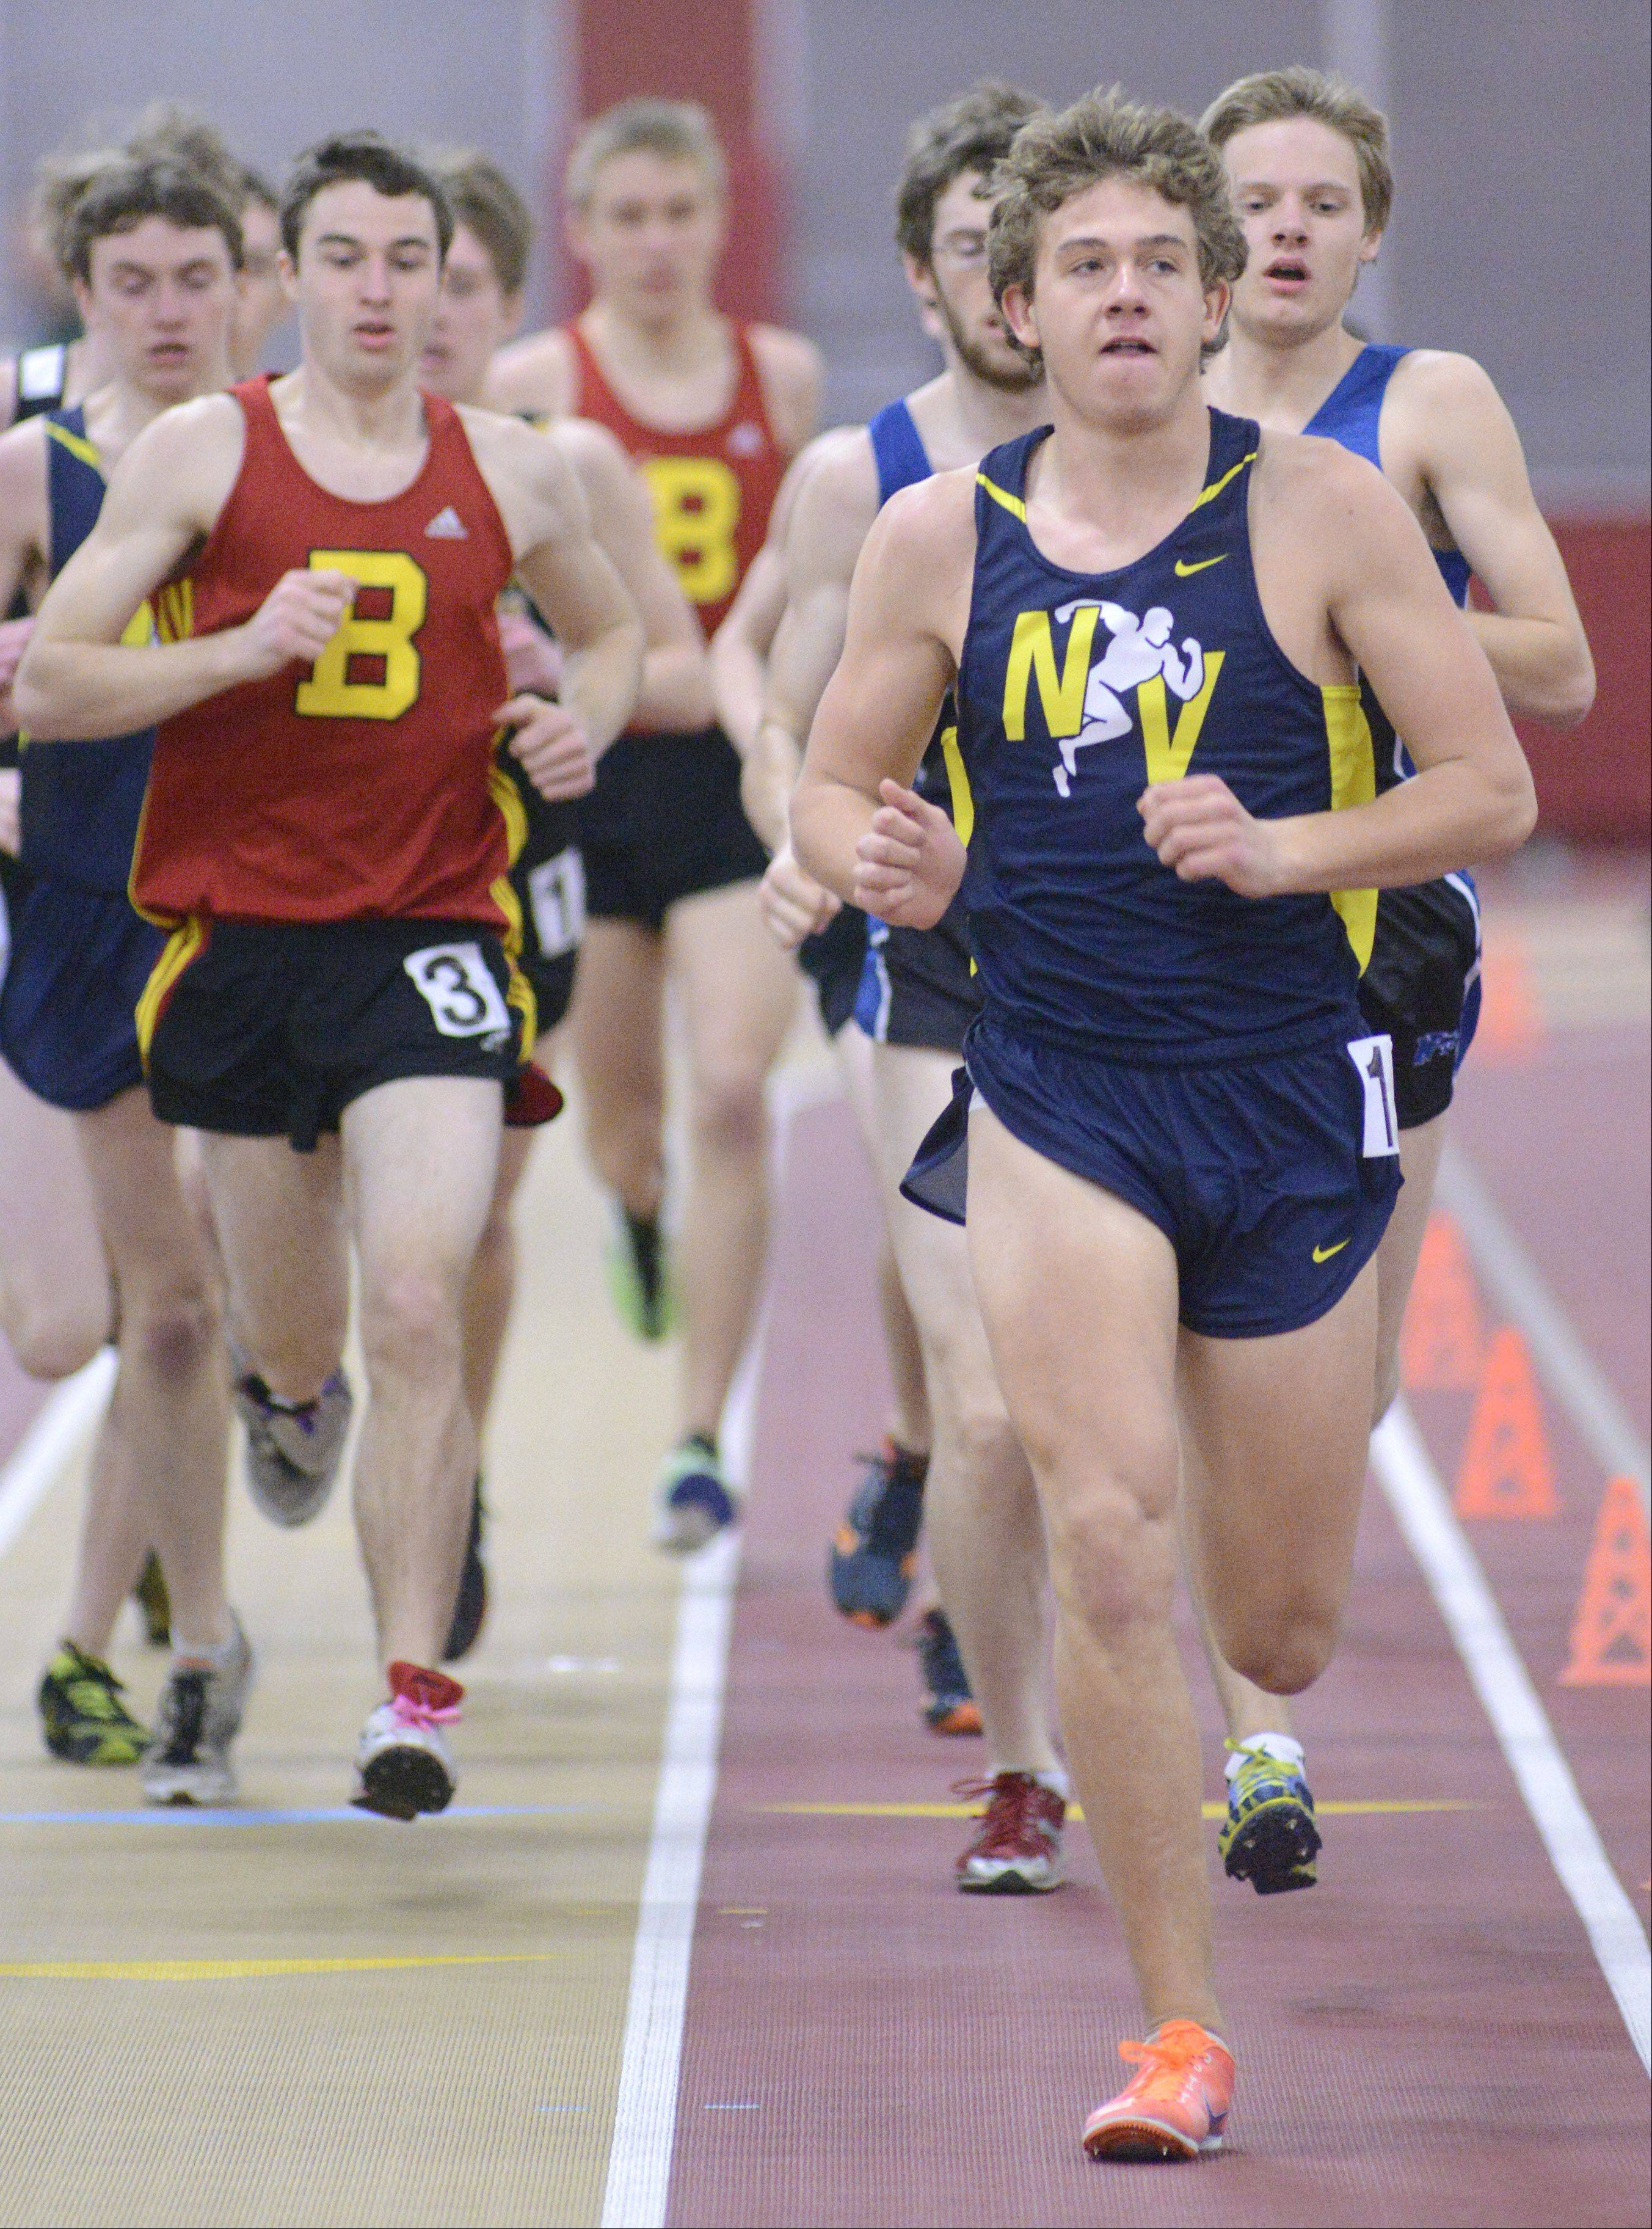 Neuqua Valley's Nick Bushelle leads the 3200 meter run at the Upstate Eight Conference in Batavia on Saturday, March 16.